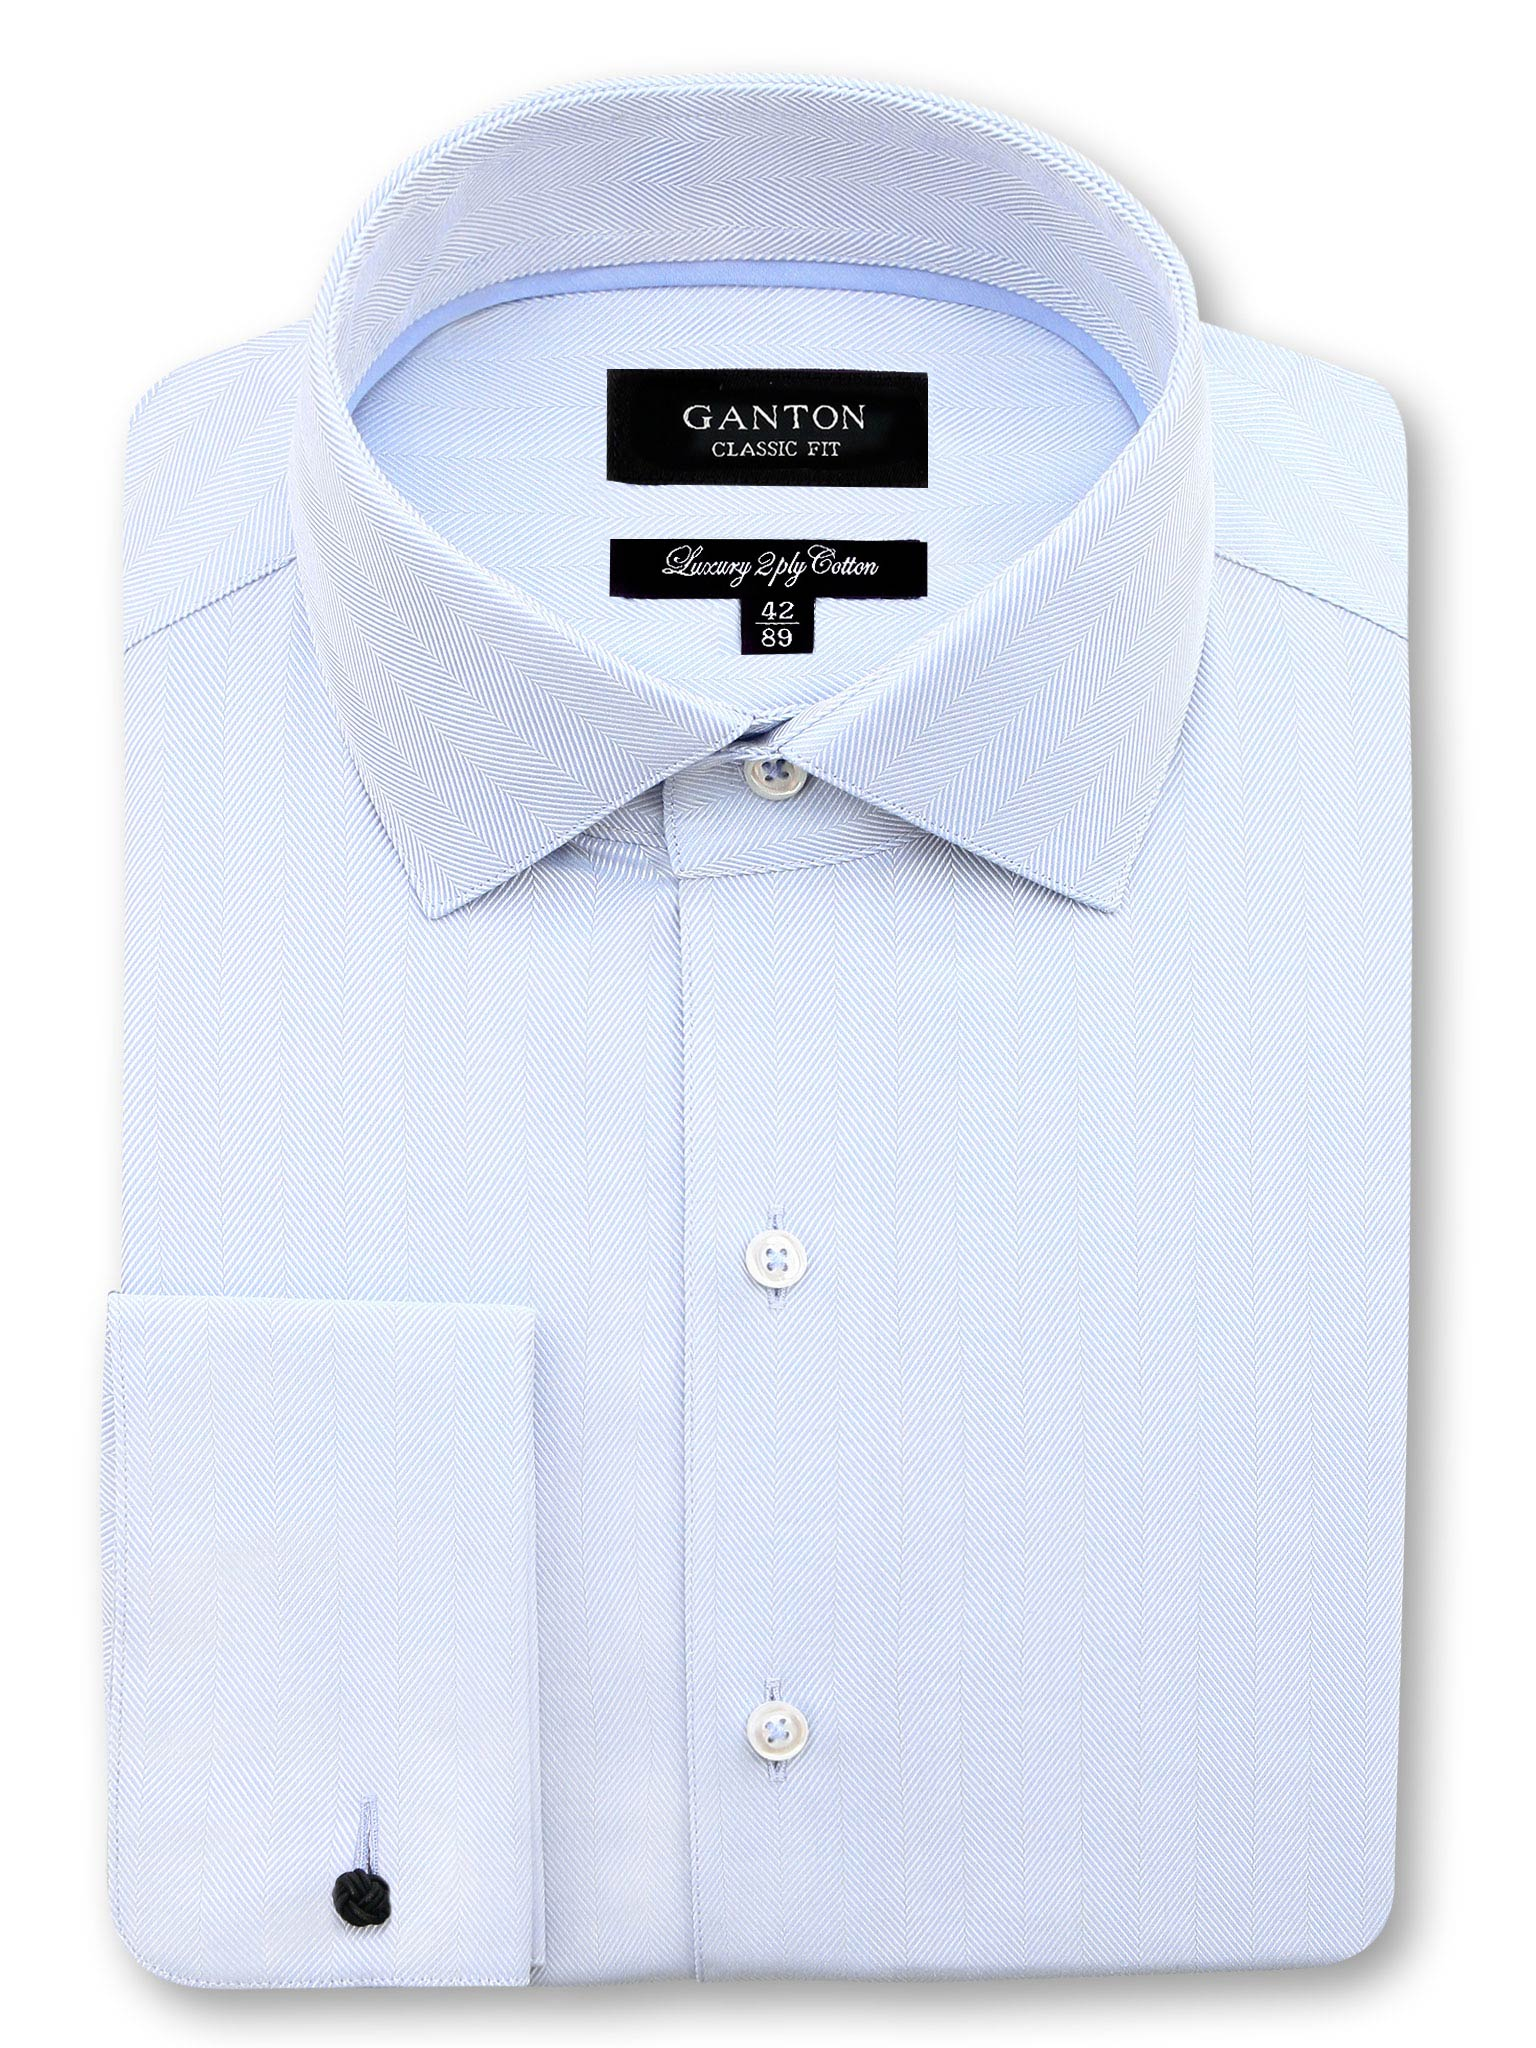 All Light Blue Textured Classic Fit Jeremiah Luxury 2 Ply Cotton Shirt